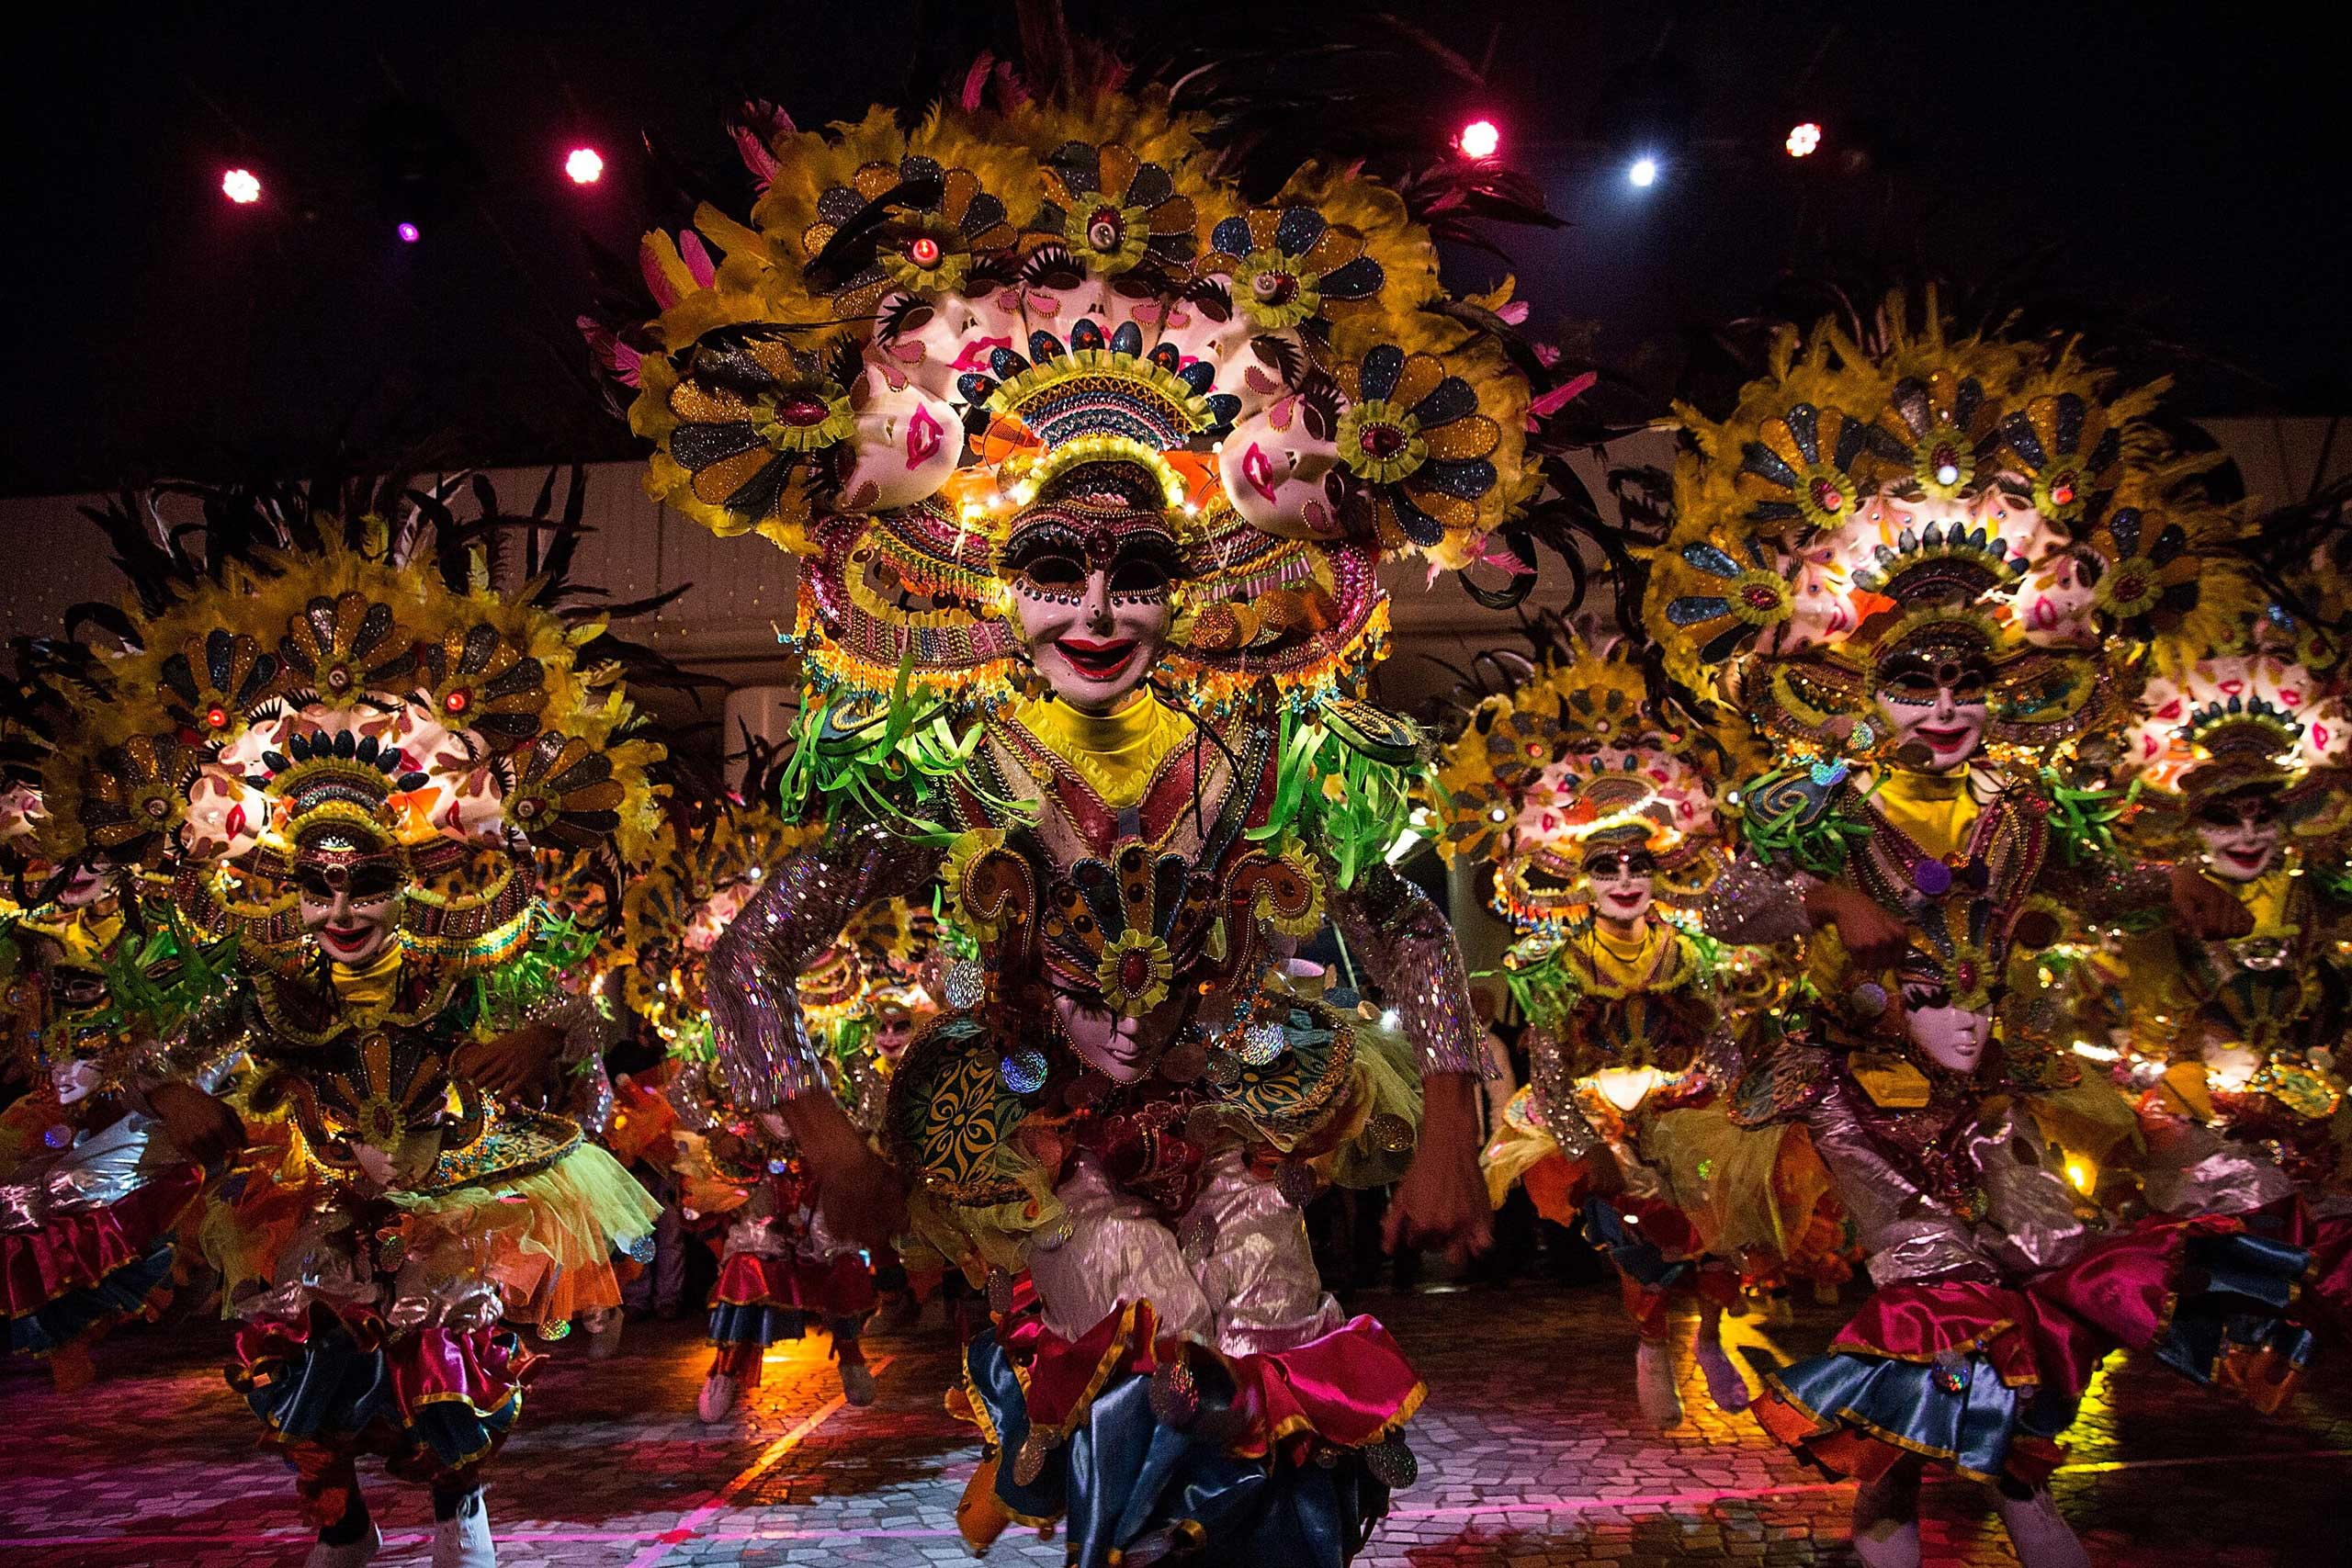 Performers dance at the 2015 Cathay Pacific International Chinese New Year Night Parade on Feb. 19, 2015 in Hong Kong.